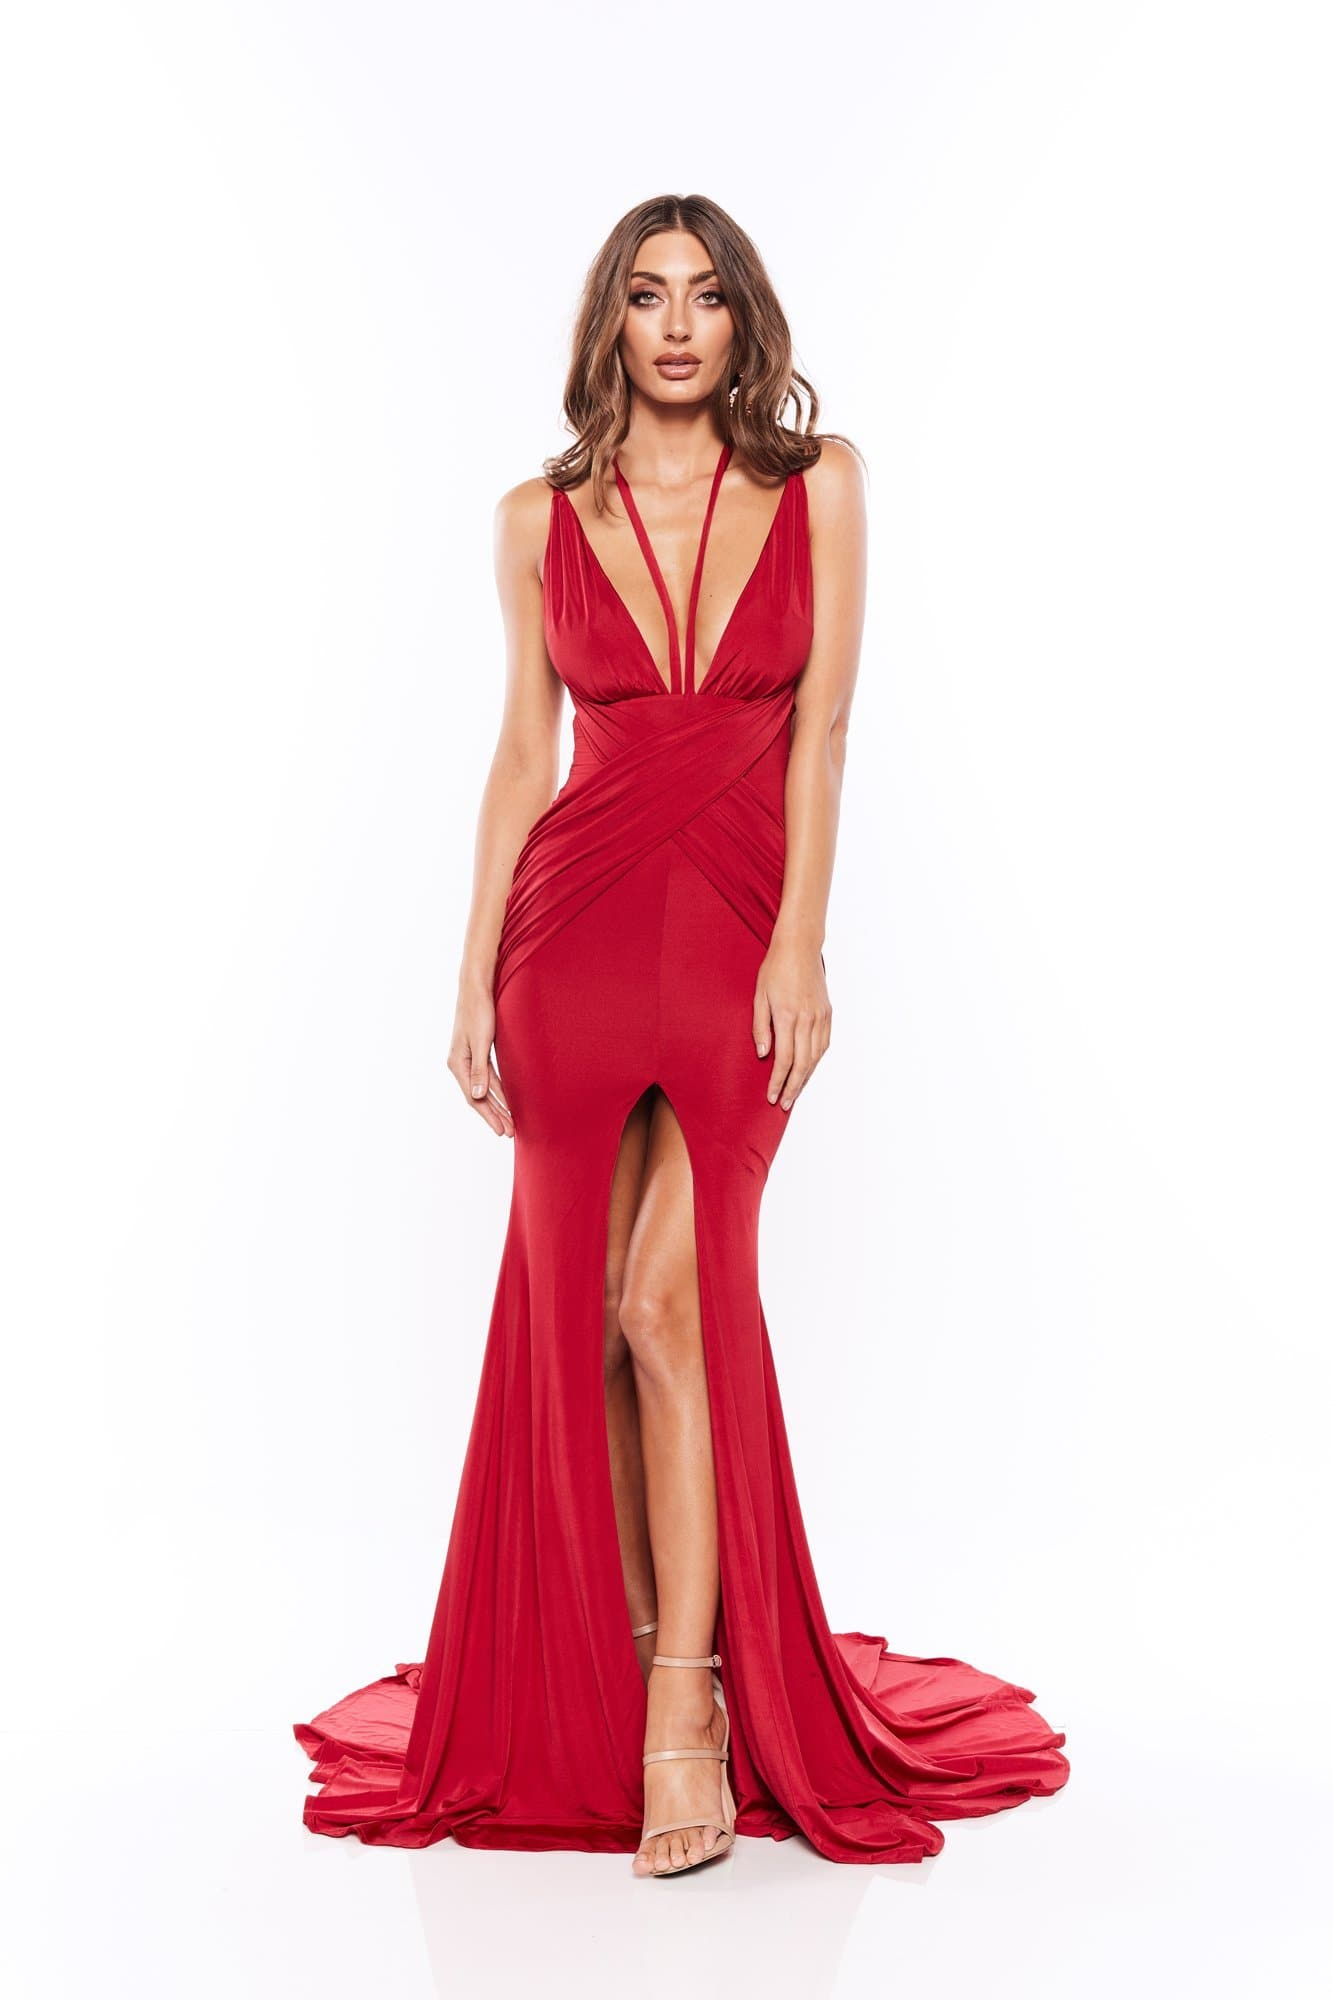 Orlena - Wine Red Gown with Strap Detail & Slit - Pre Order End August